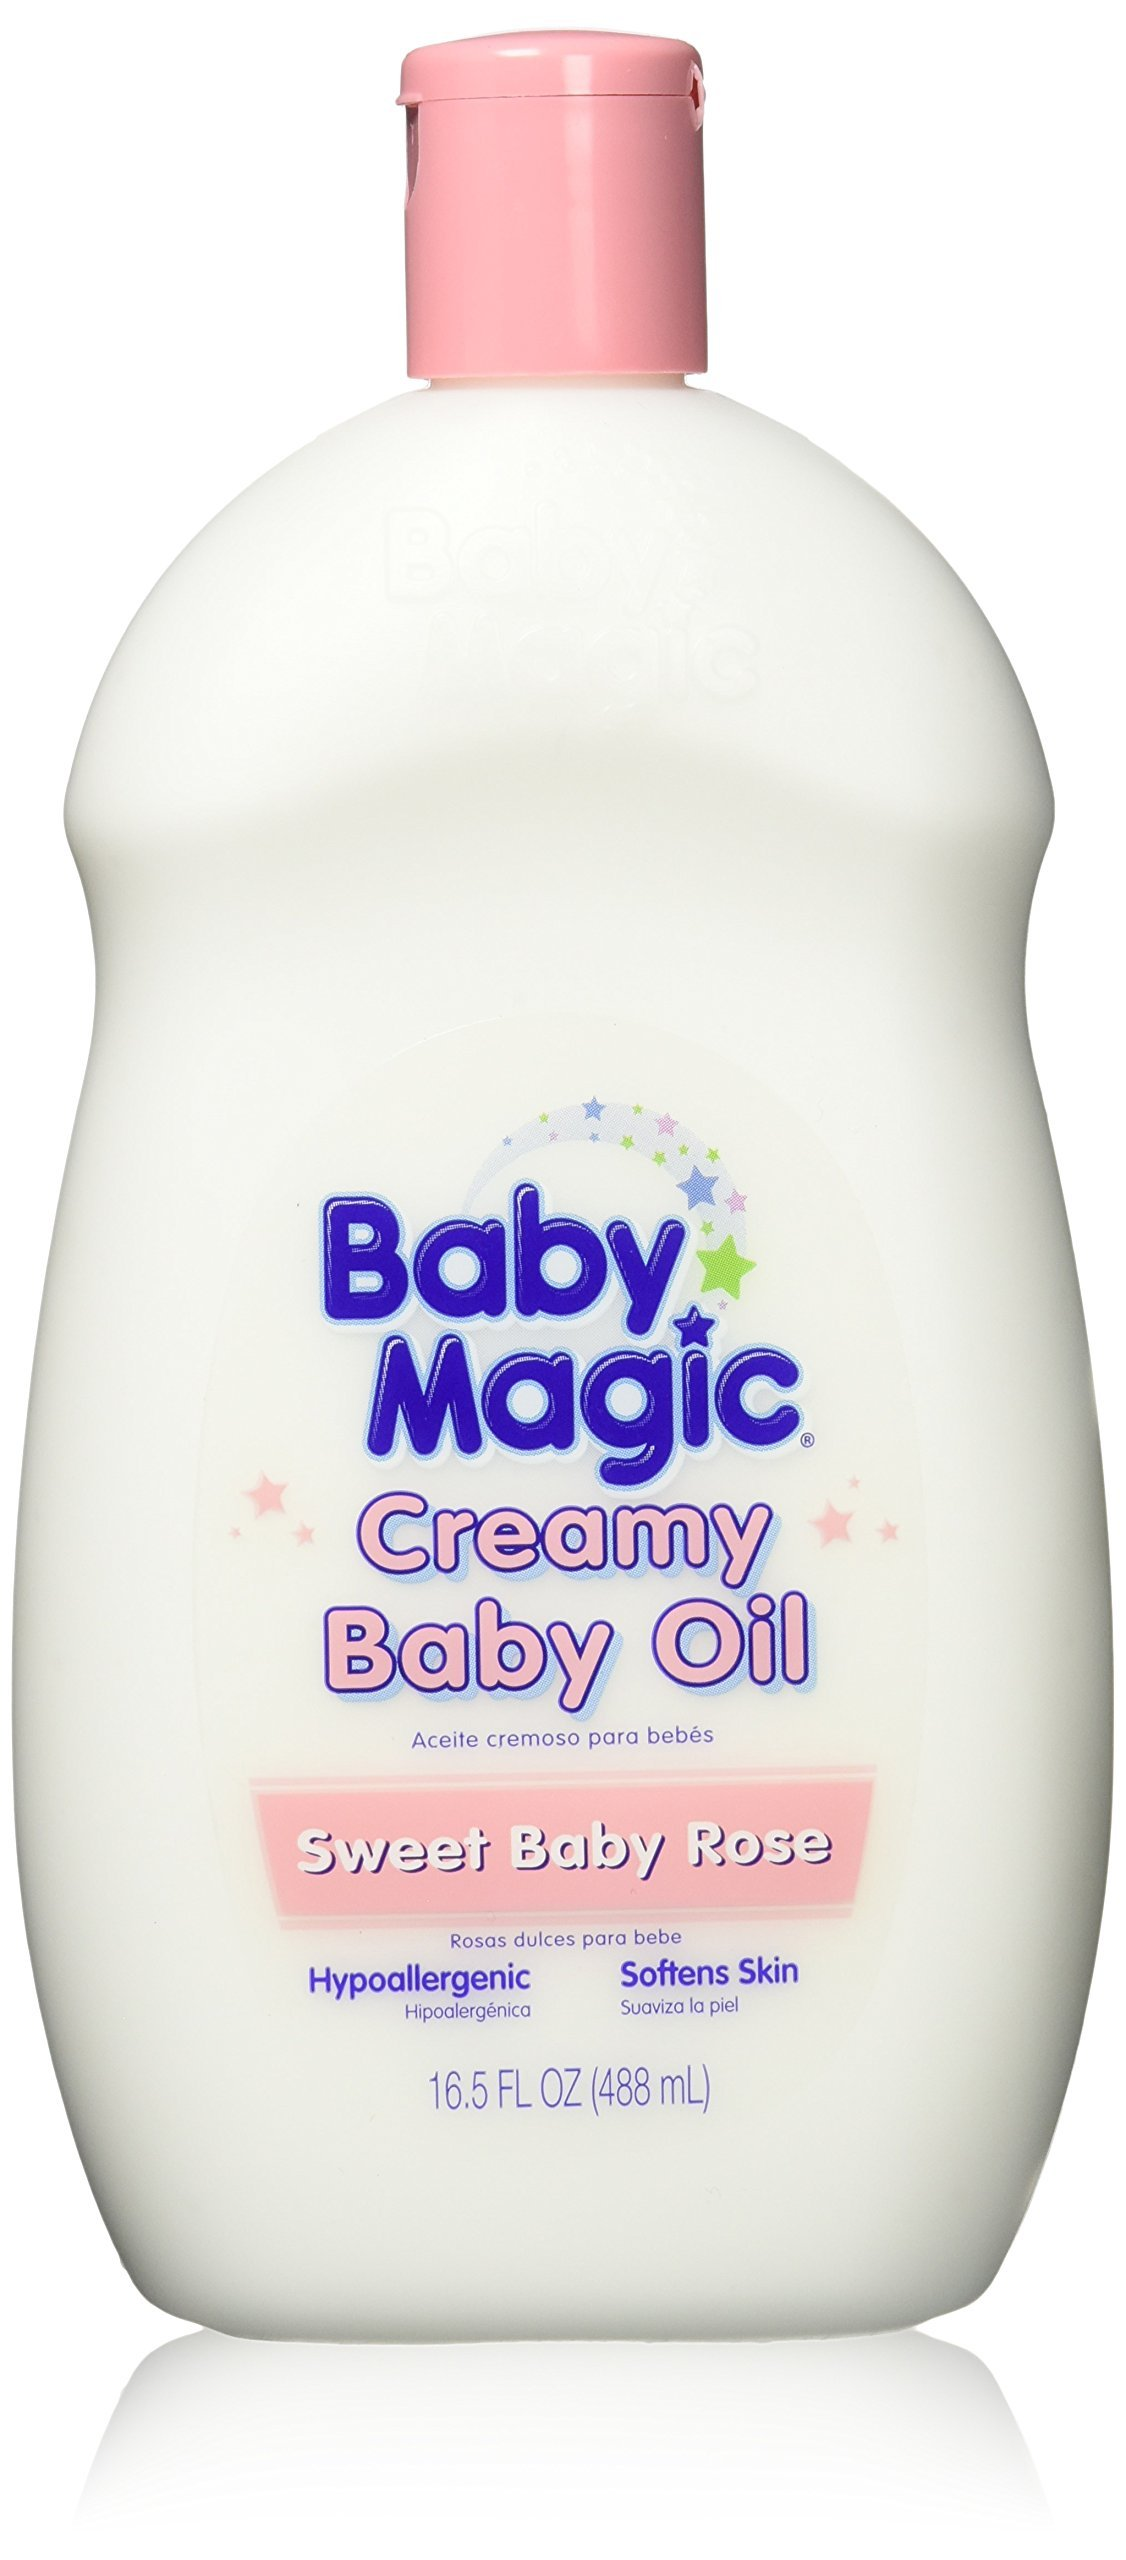 Baby Magic Creamy Baby Oil 16.5oz Sweet Baby Rose (3 Pack) by Baby Magic